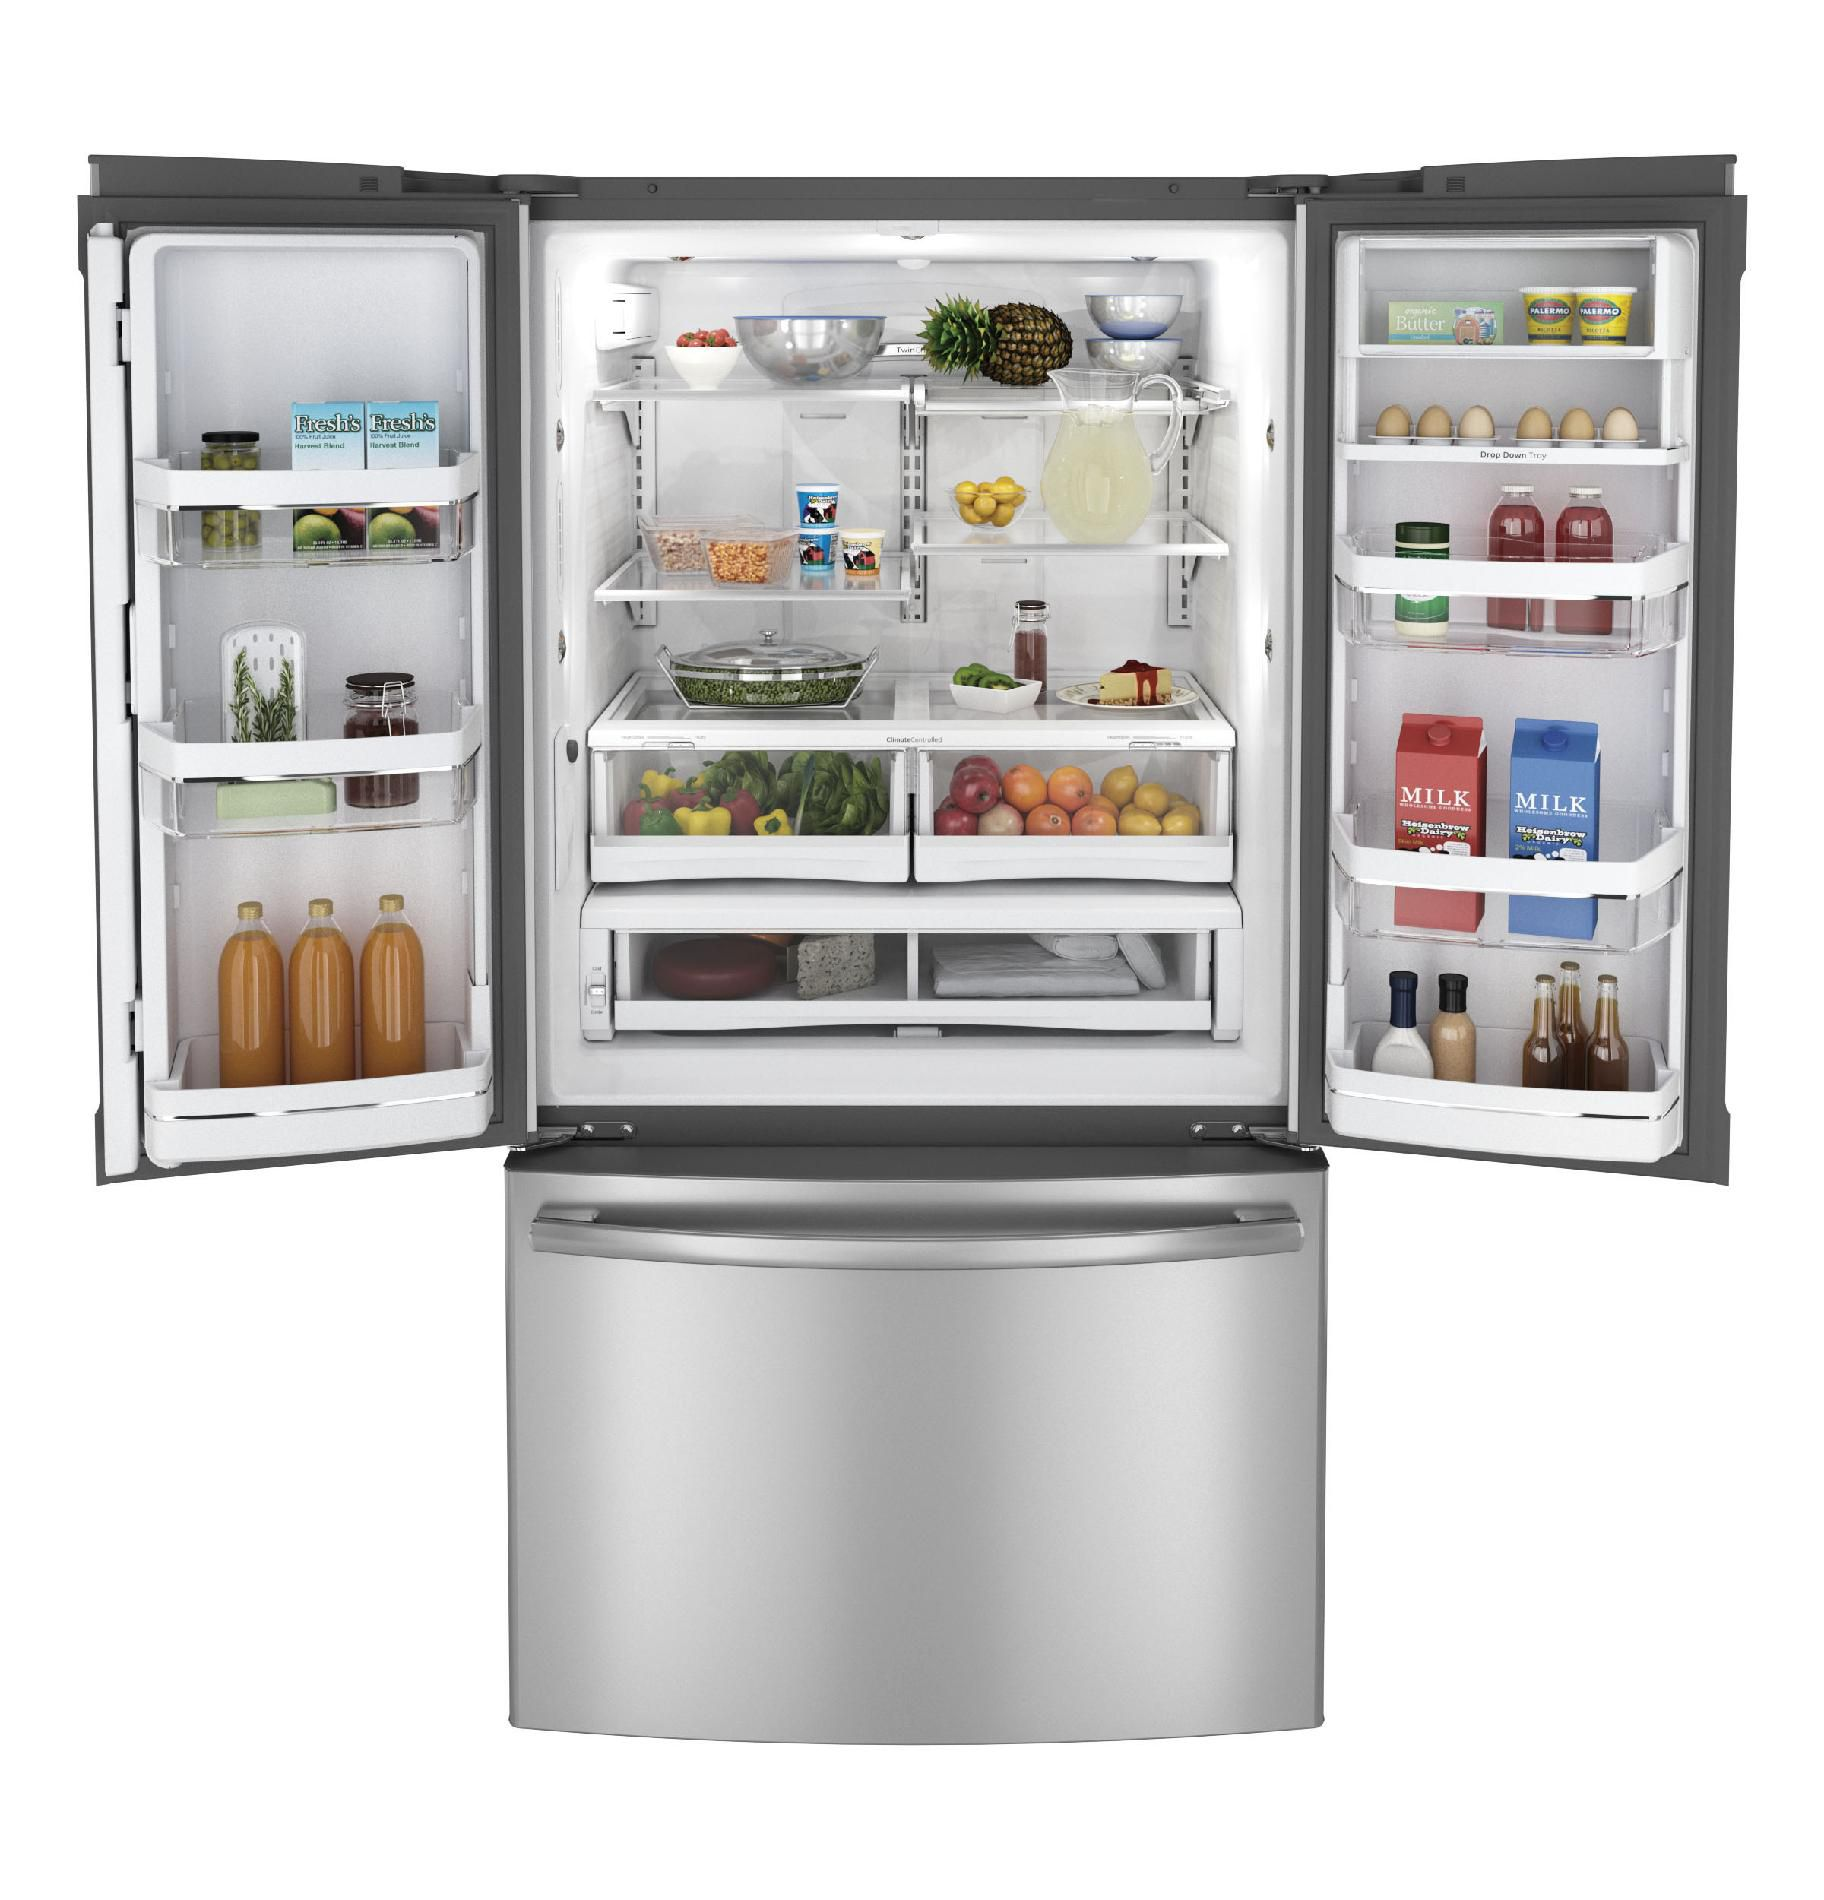 GE Profile 22.7 cu. ft. Counter-Depth French-Door Refrigerator - White